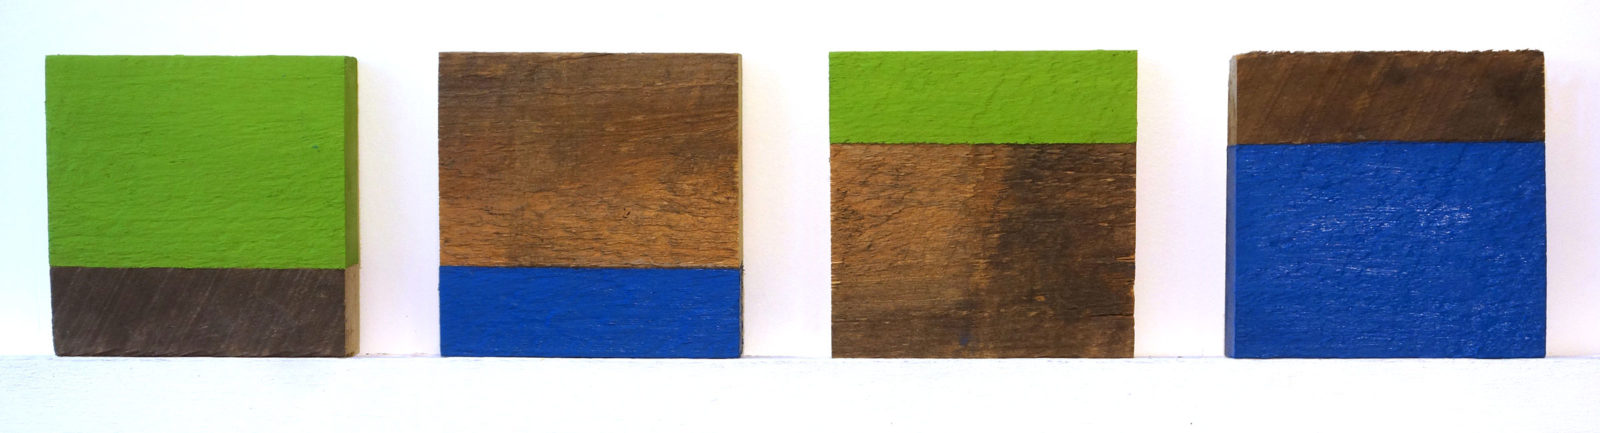 "Four ""Untitled"" entries to Rochester Contemporary 6x6 Show, oil on wood, Paul Dodd 2016"